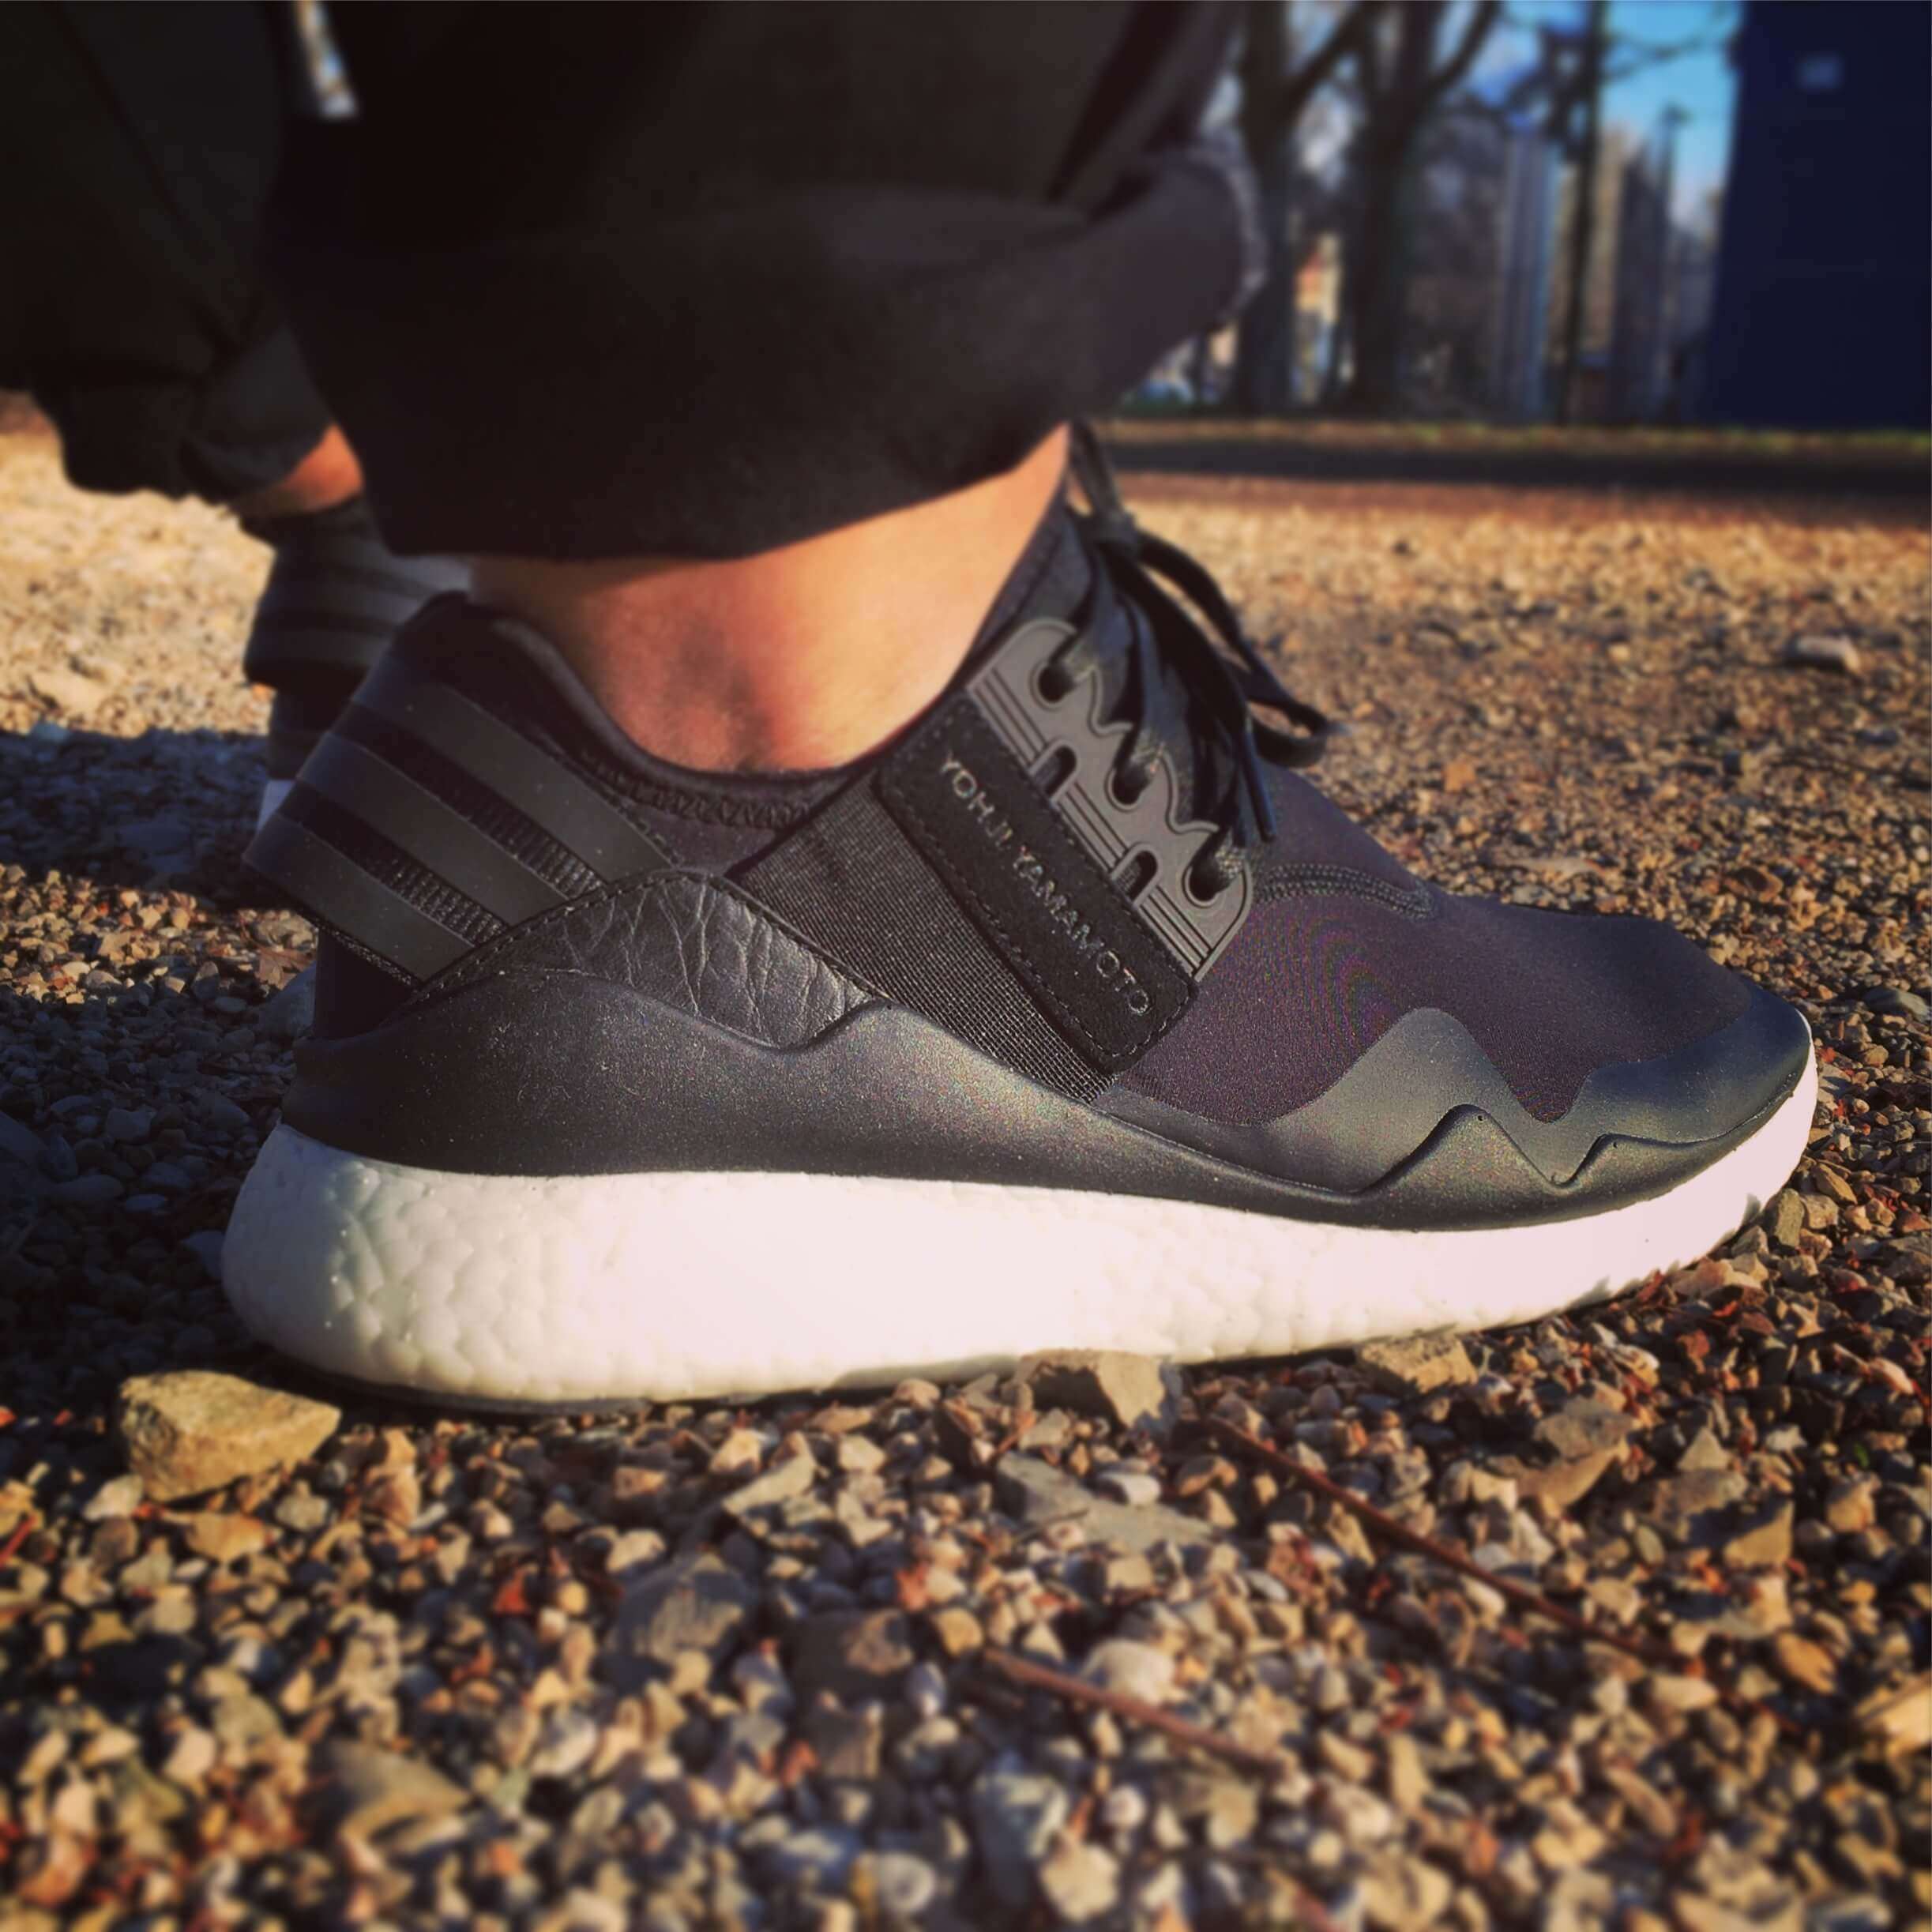 Y-3-Retro-Boost-Triple-Black-Rear-View-Benstah-Onfeet